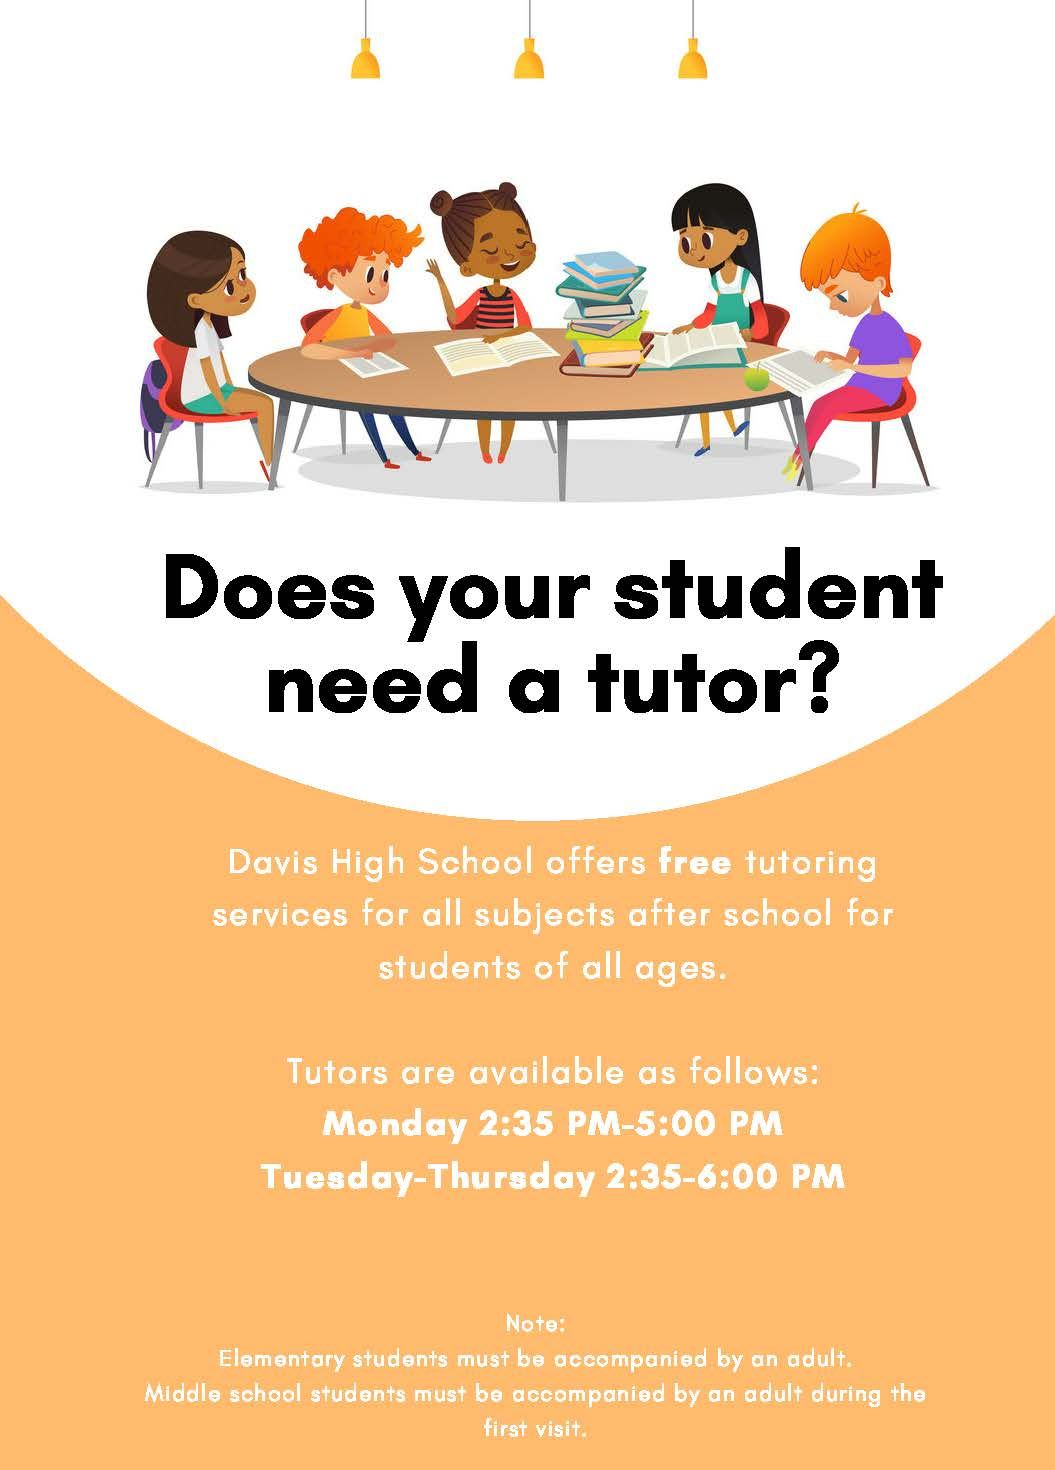 Student Tutoring at Davis High School